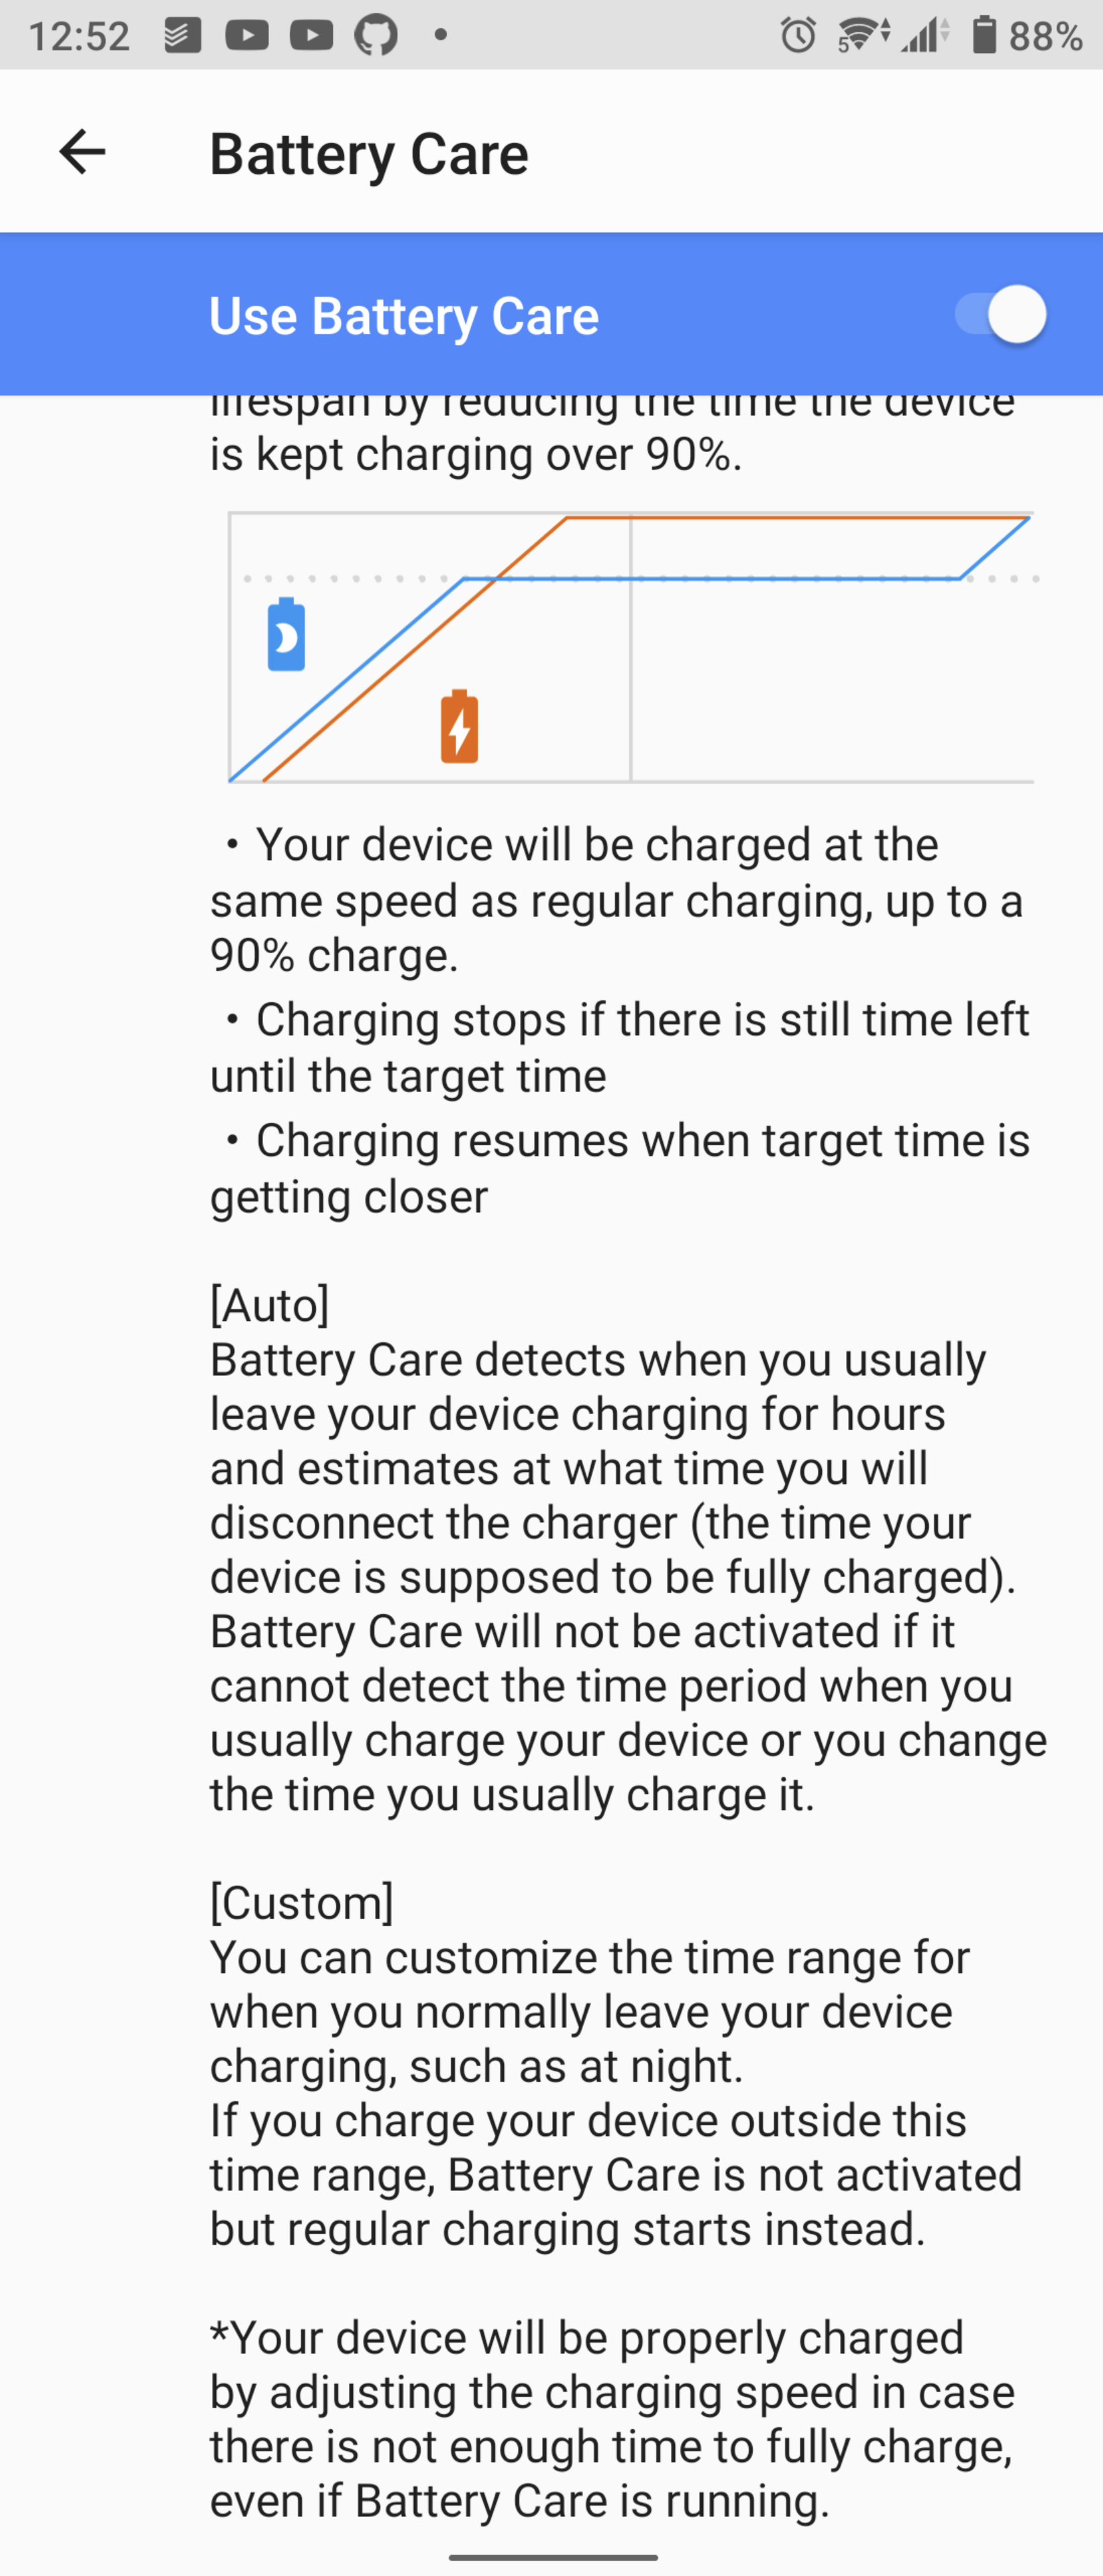 Explanation of what battery care does